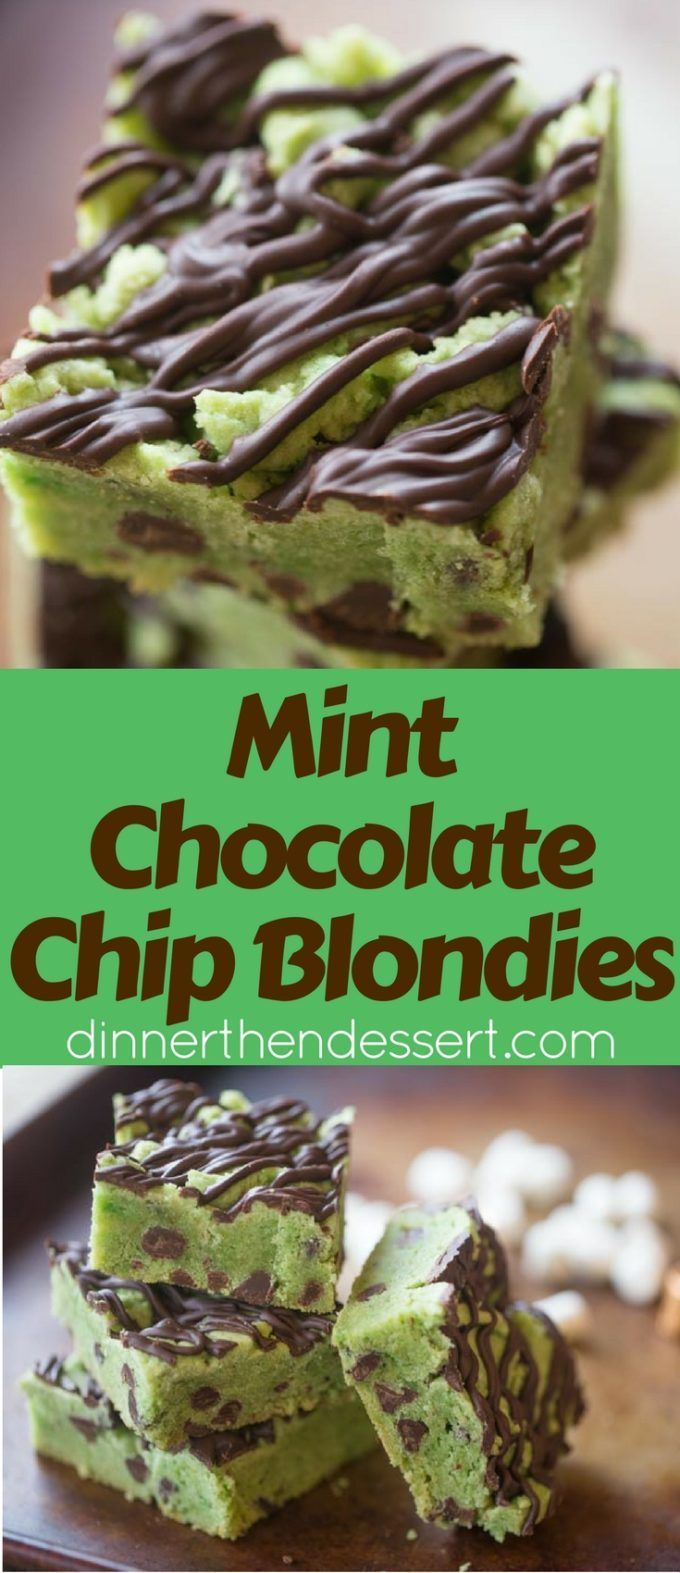 Mint Chocolate Chip Blondies that taste just like your favorite ice cream flavor in thick cookie bar form loaded with chocolate chips and a chocolate drizzle.